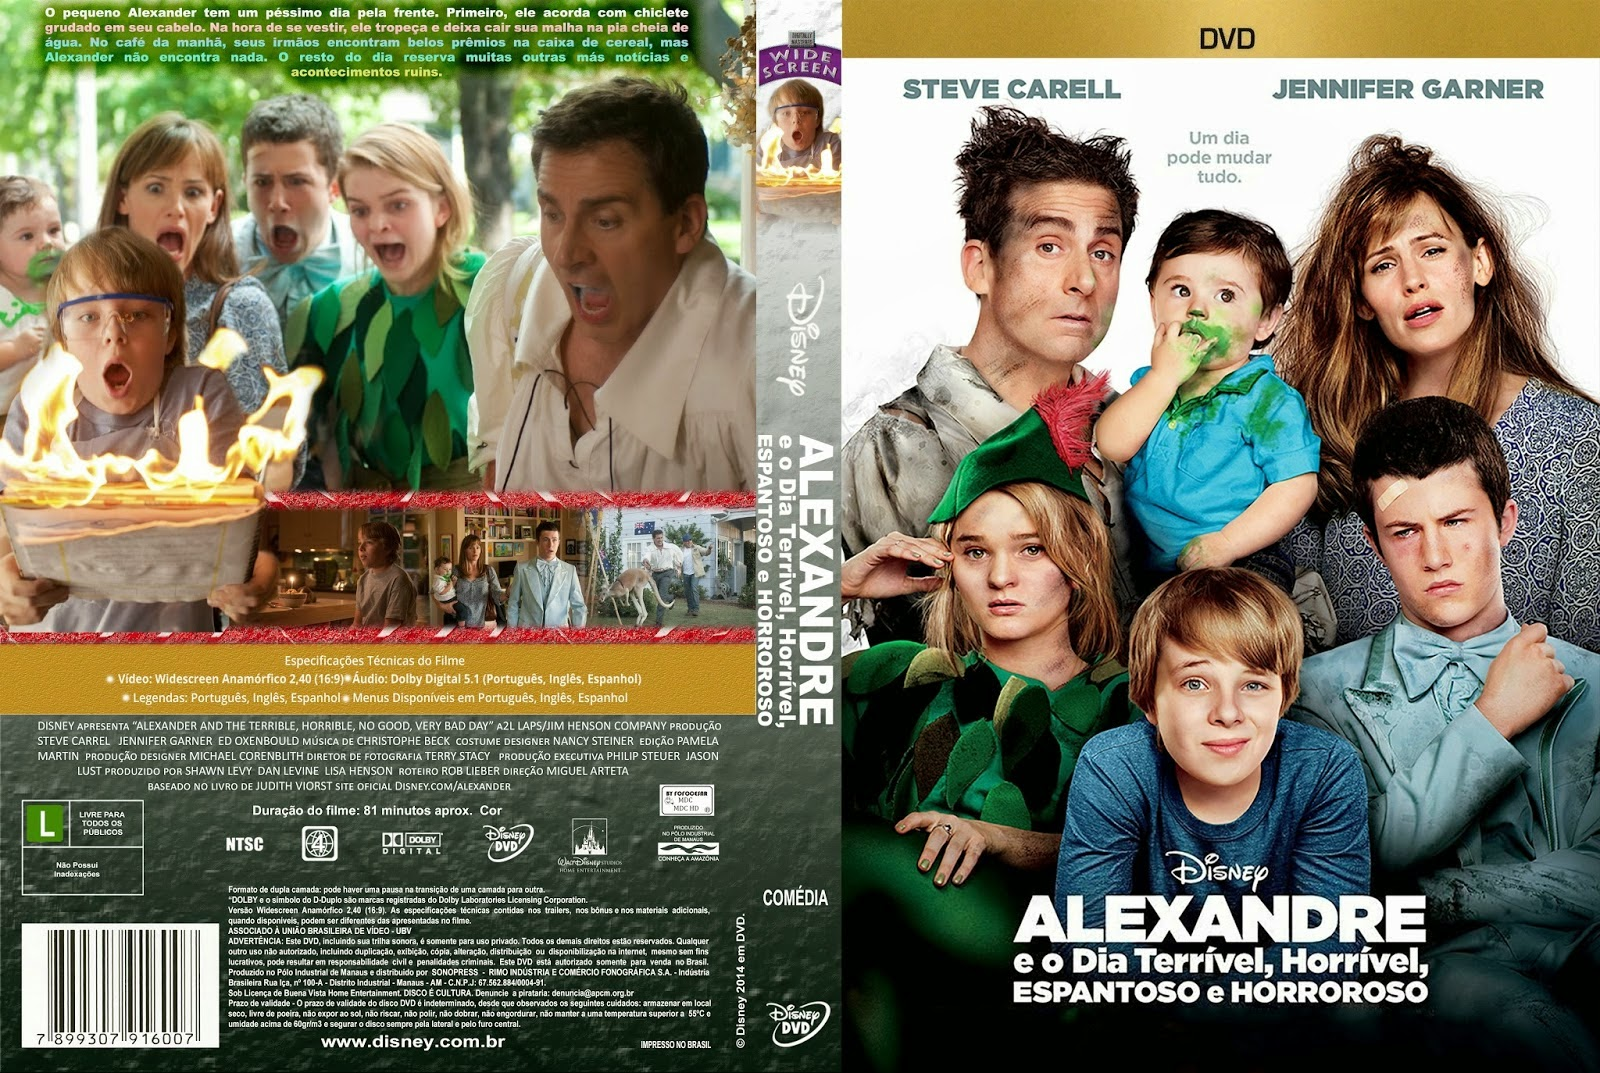 Alexandre e o Dia Terrível, Horrível, Espantoso e Horroroso BDRip Dual Áudio Alexandre 2BE 2BO 2BDia 2BTerr C3 ADvel  2BHorr C3 ADvel  2BEspantoso 2BE 2BHorroroso